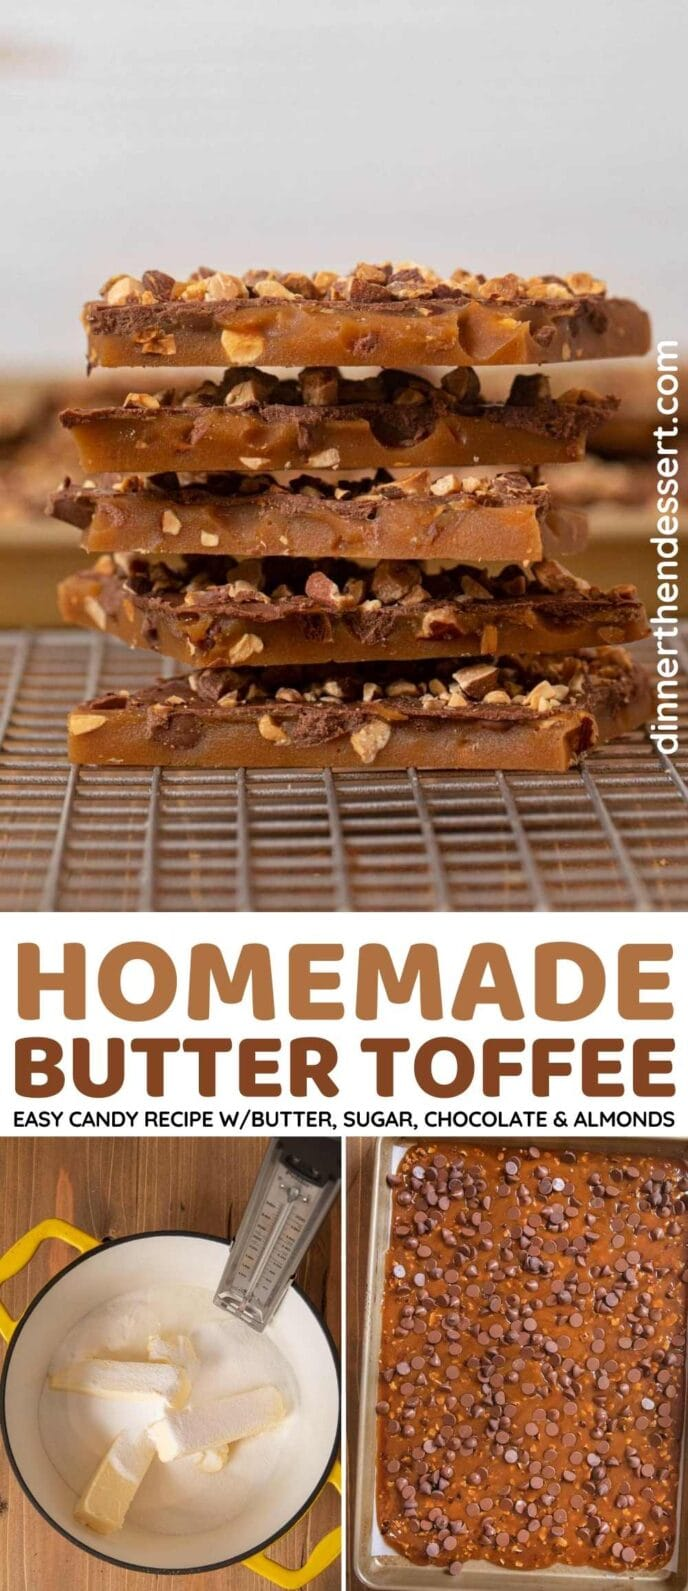 Butter Toffee Collage